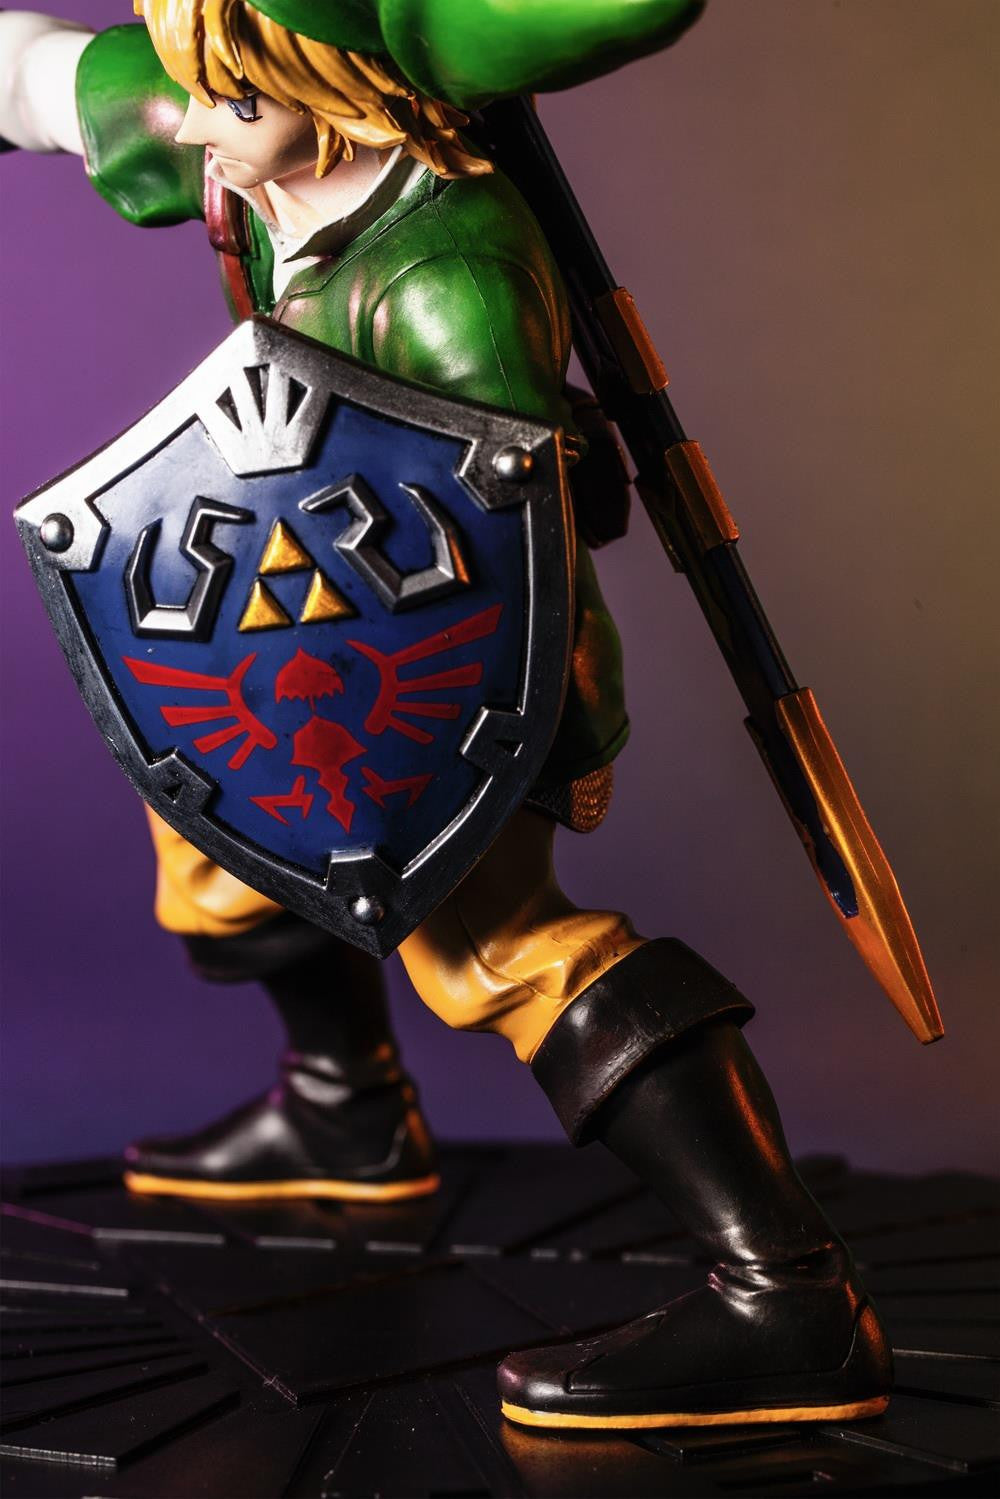 First 4 Figures – The Legend of Zelda: Skyward Sword - Skyward Sword Link Vinyl Statue - Marvelous Toys - 8